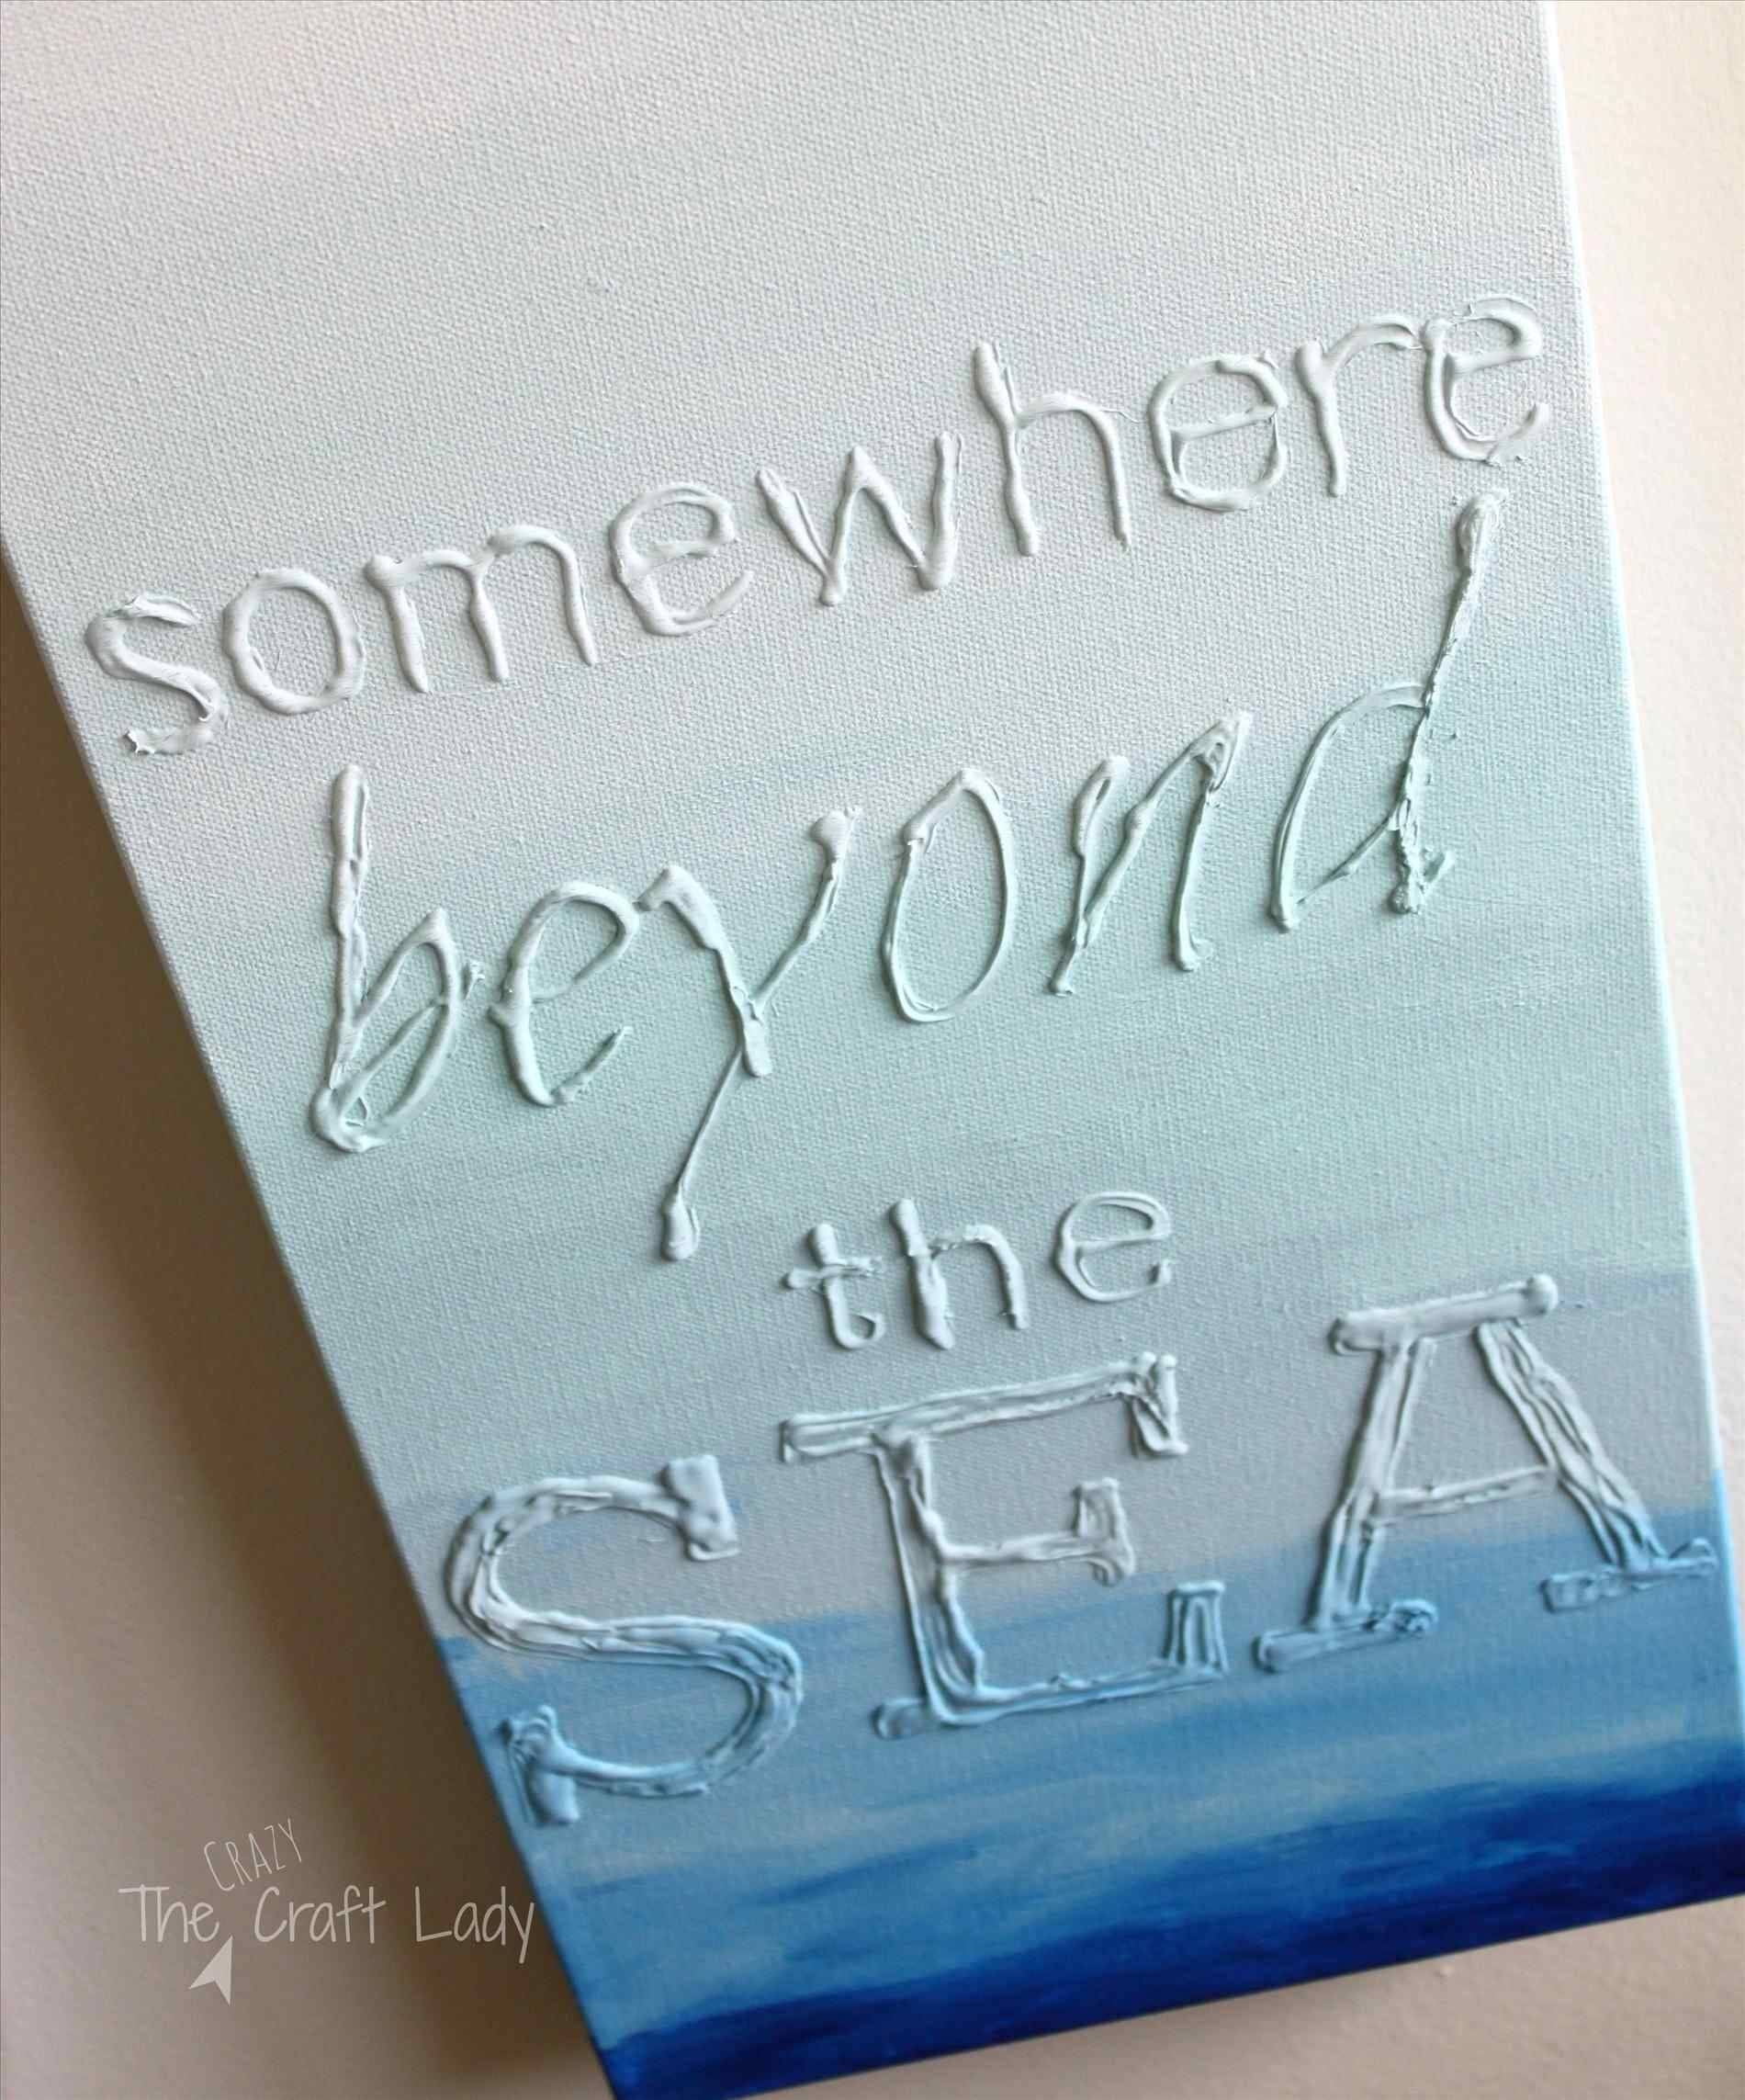 Quotes Diy Art Designs Awesome Diy Canvas Quote Youtube Diy Canvas Throughout Most Current Diy Canvas Wall Art Quotes (Gallery 5 of 20)